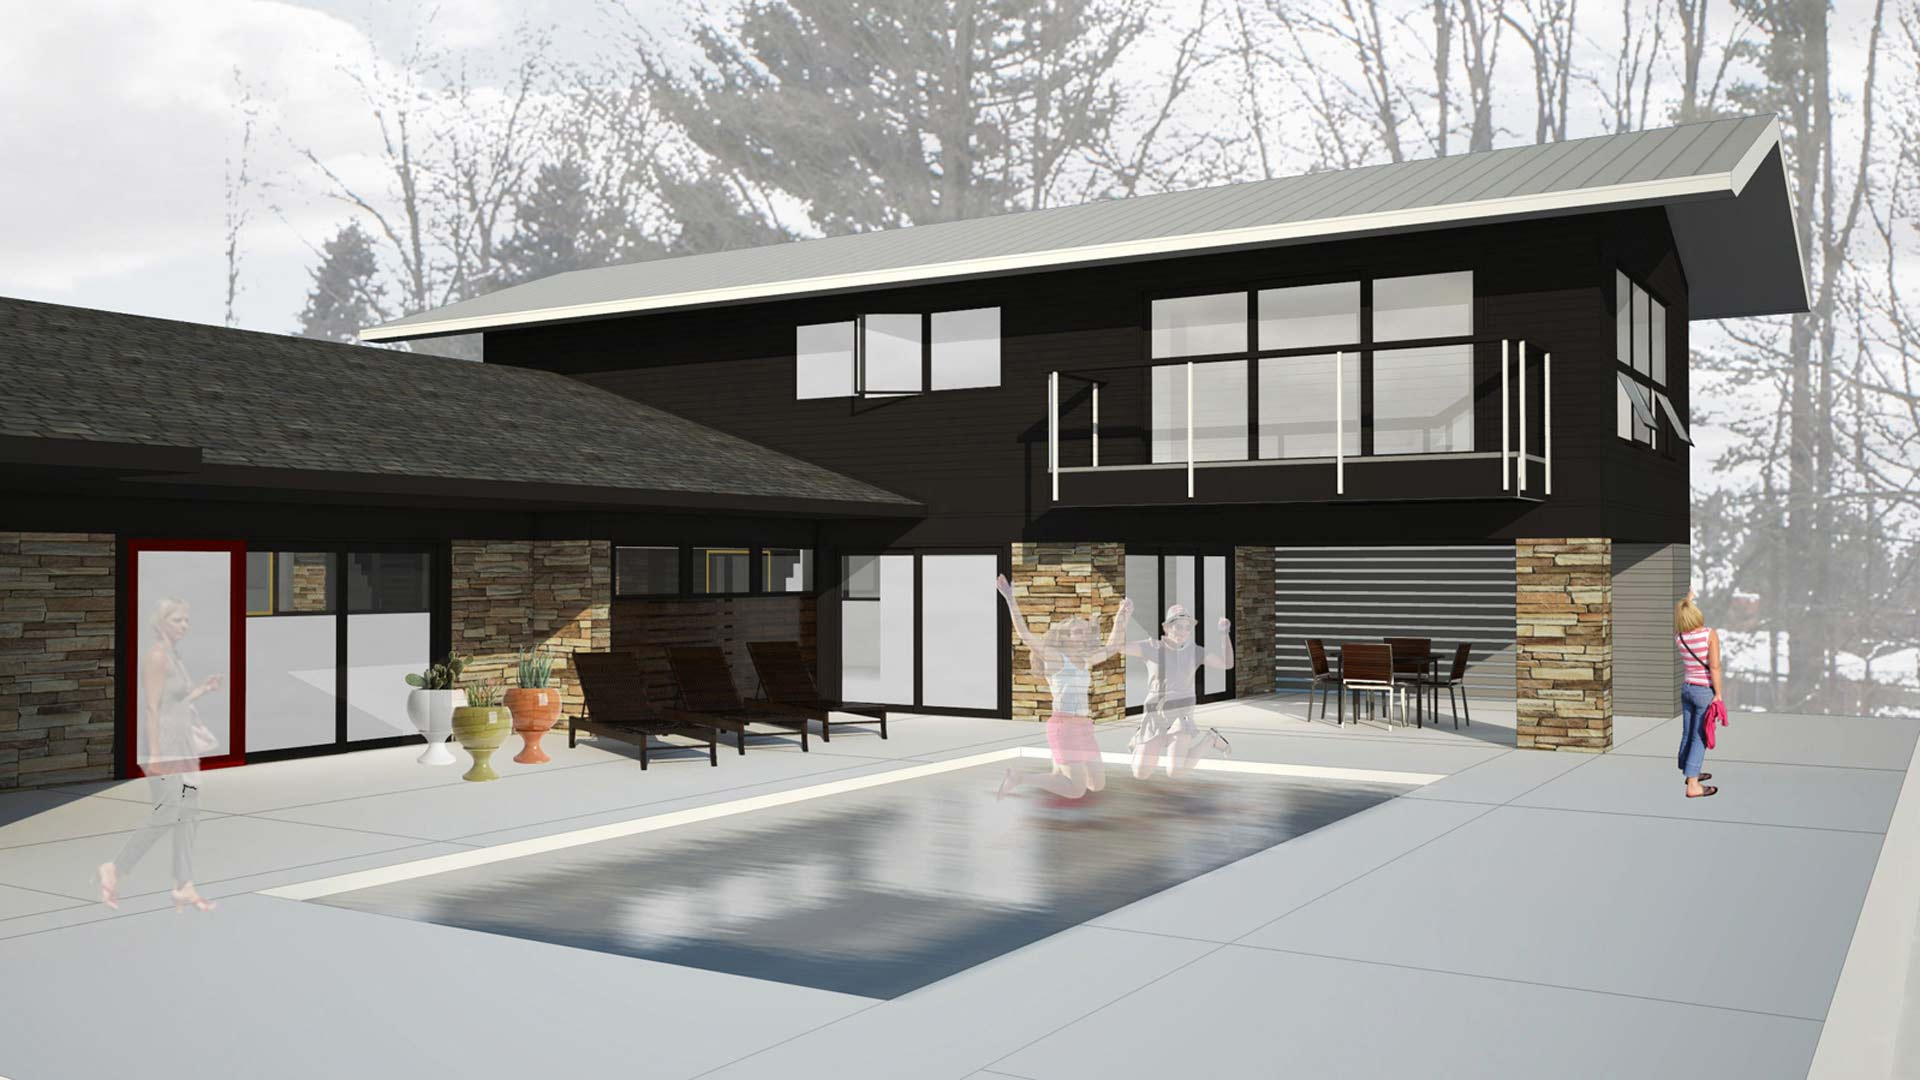 Midcentury Modern Renovation 3 - HAUS Architecture, Christopher Short, Indianapolis Architect